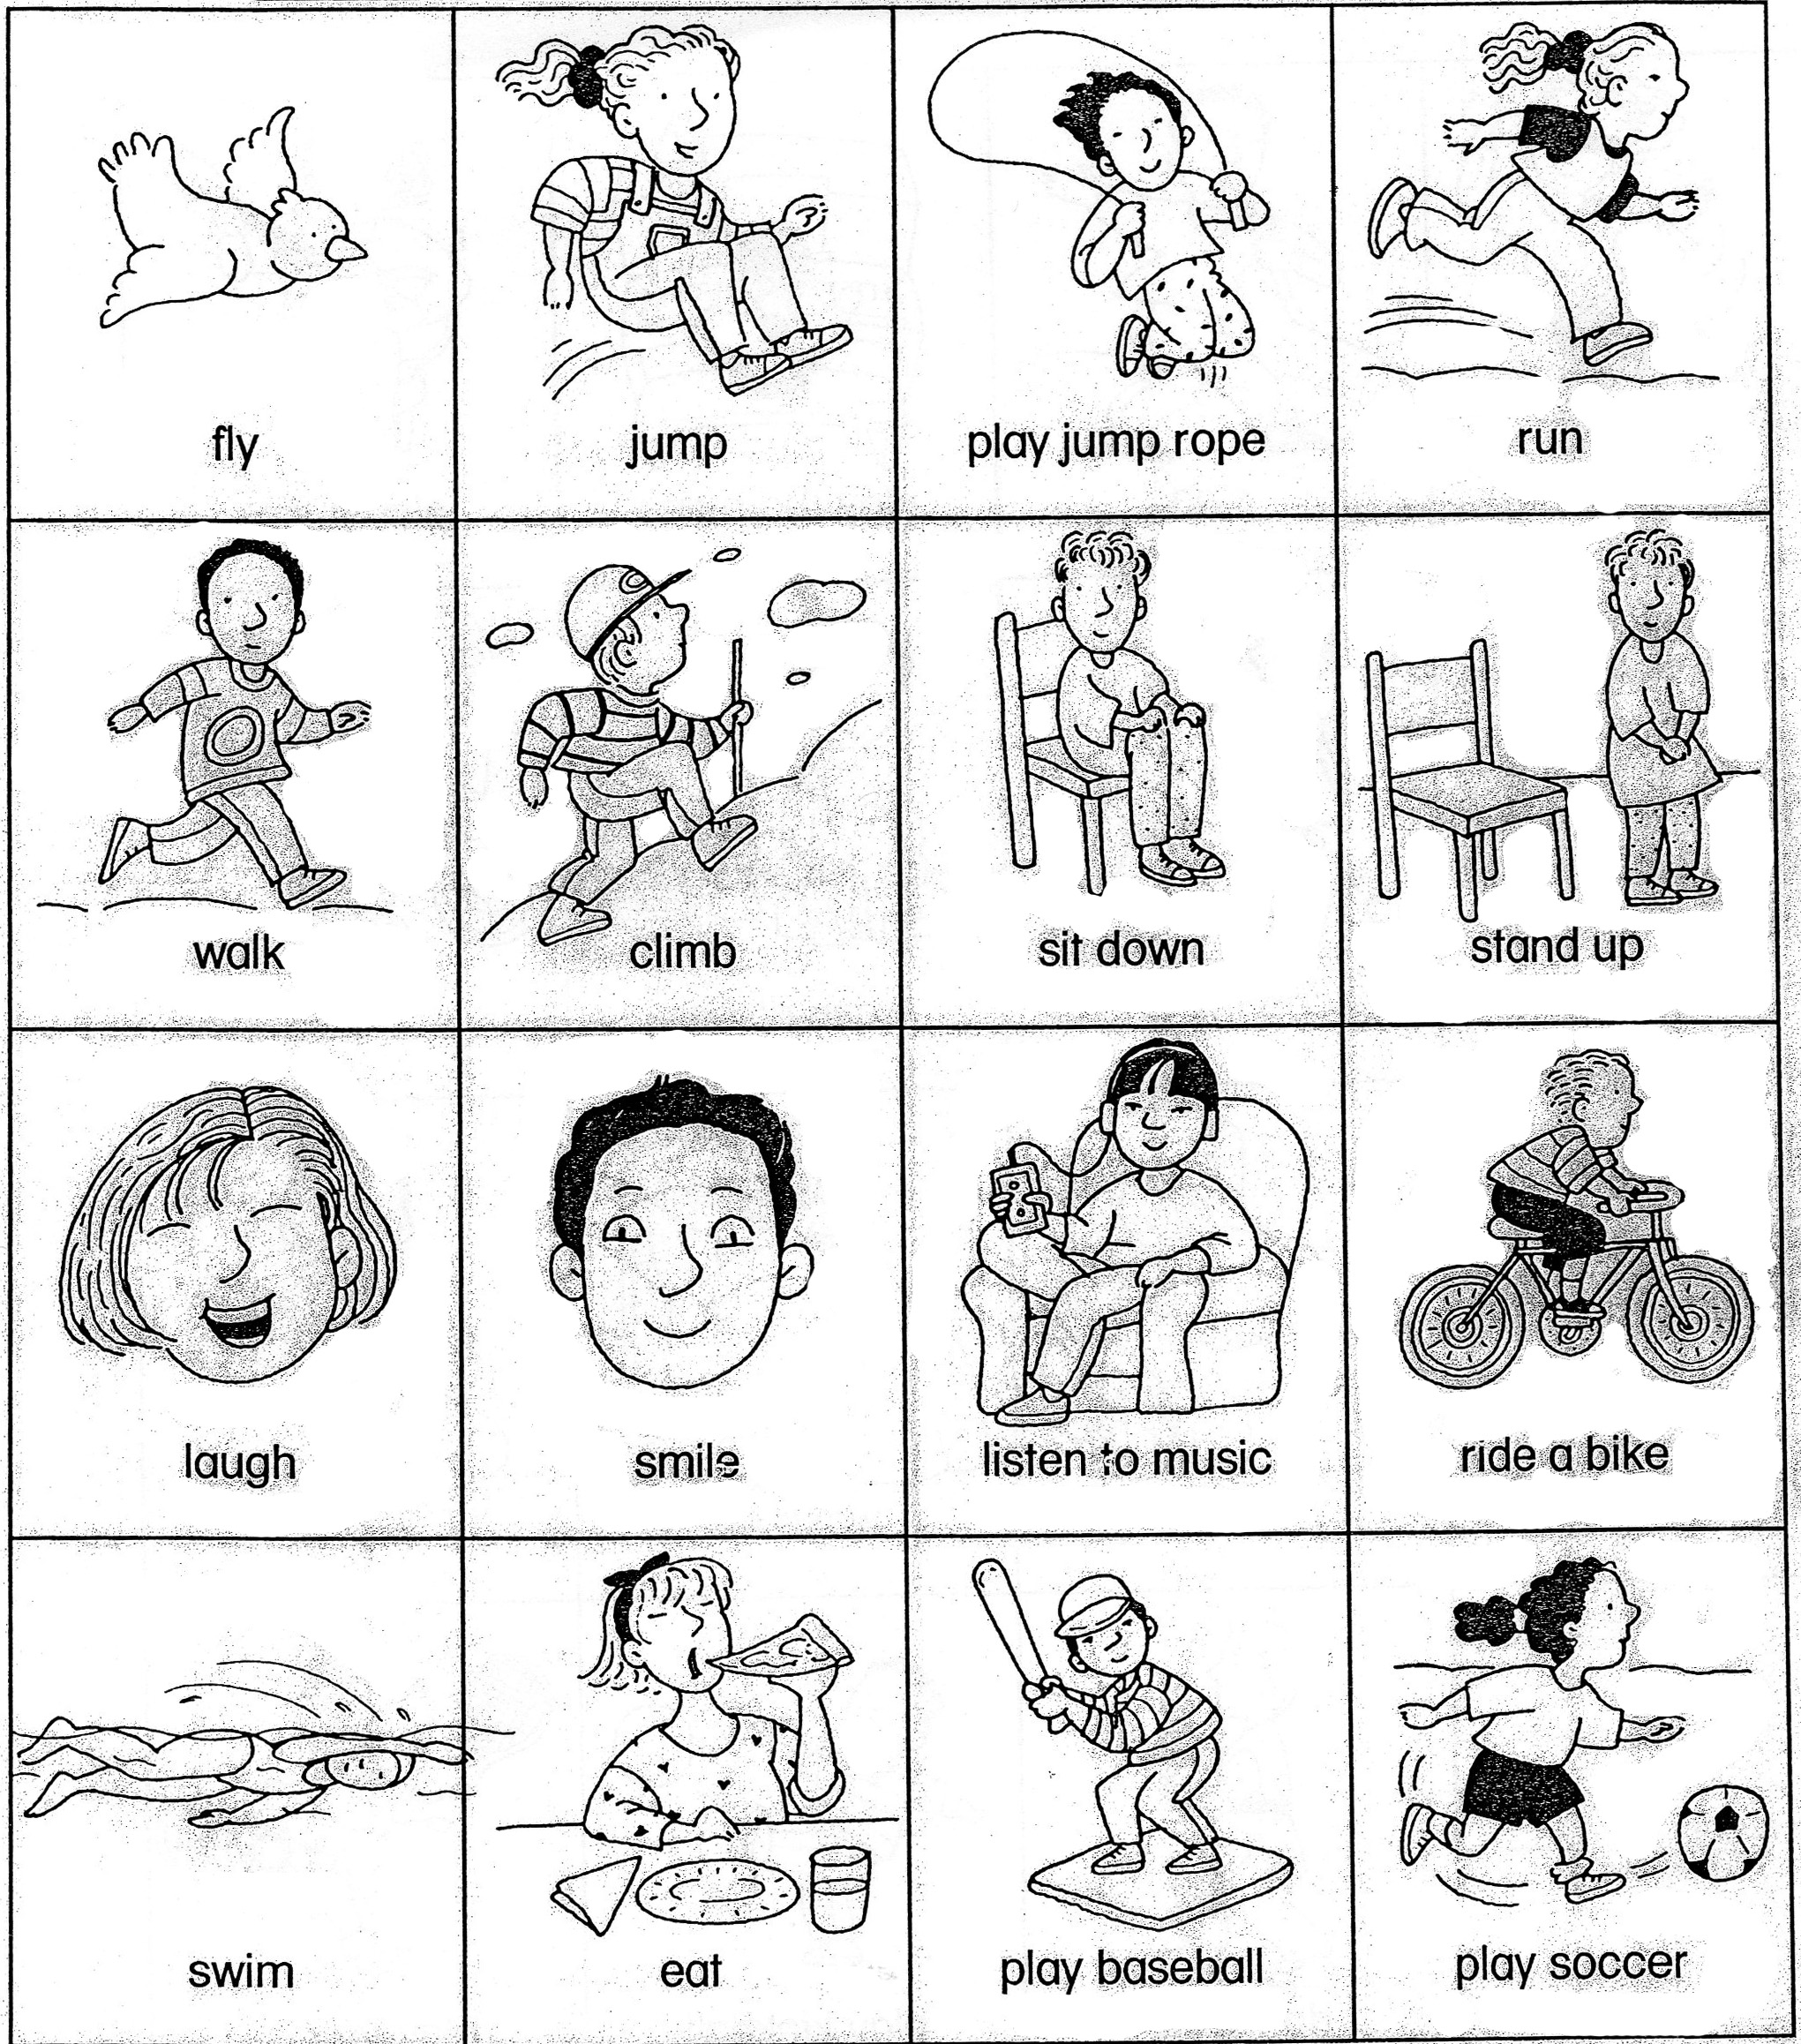 Action verbs homework – Action Words Worksheets for Kindergarten